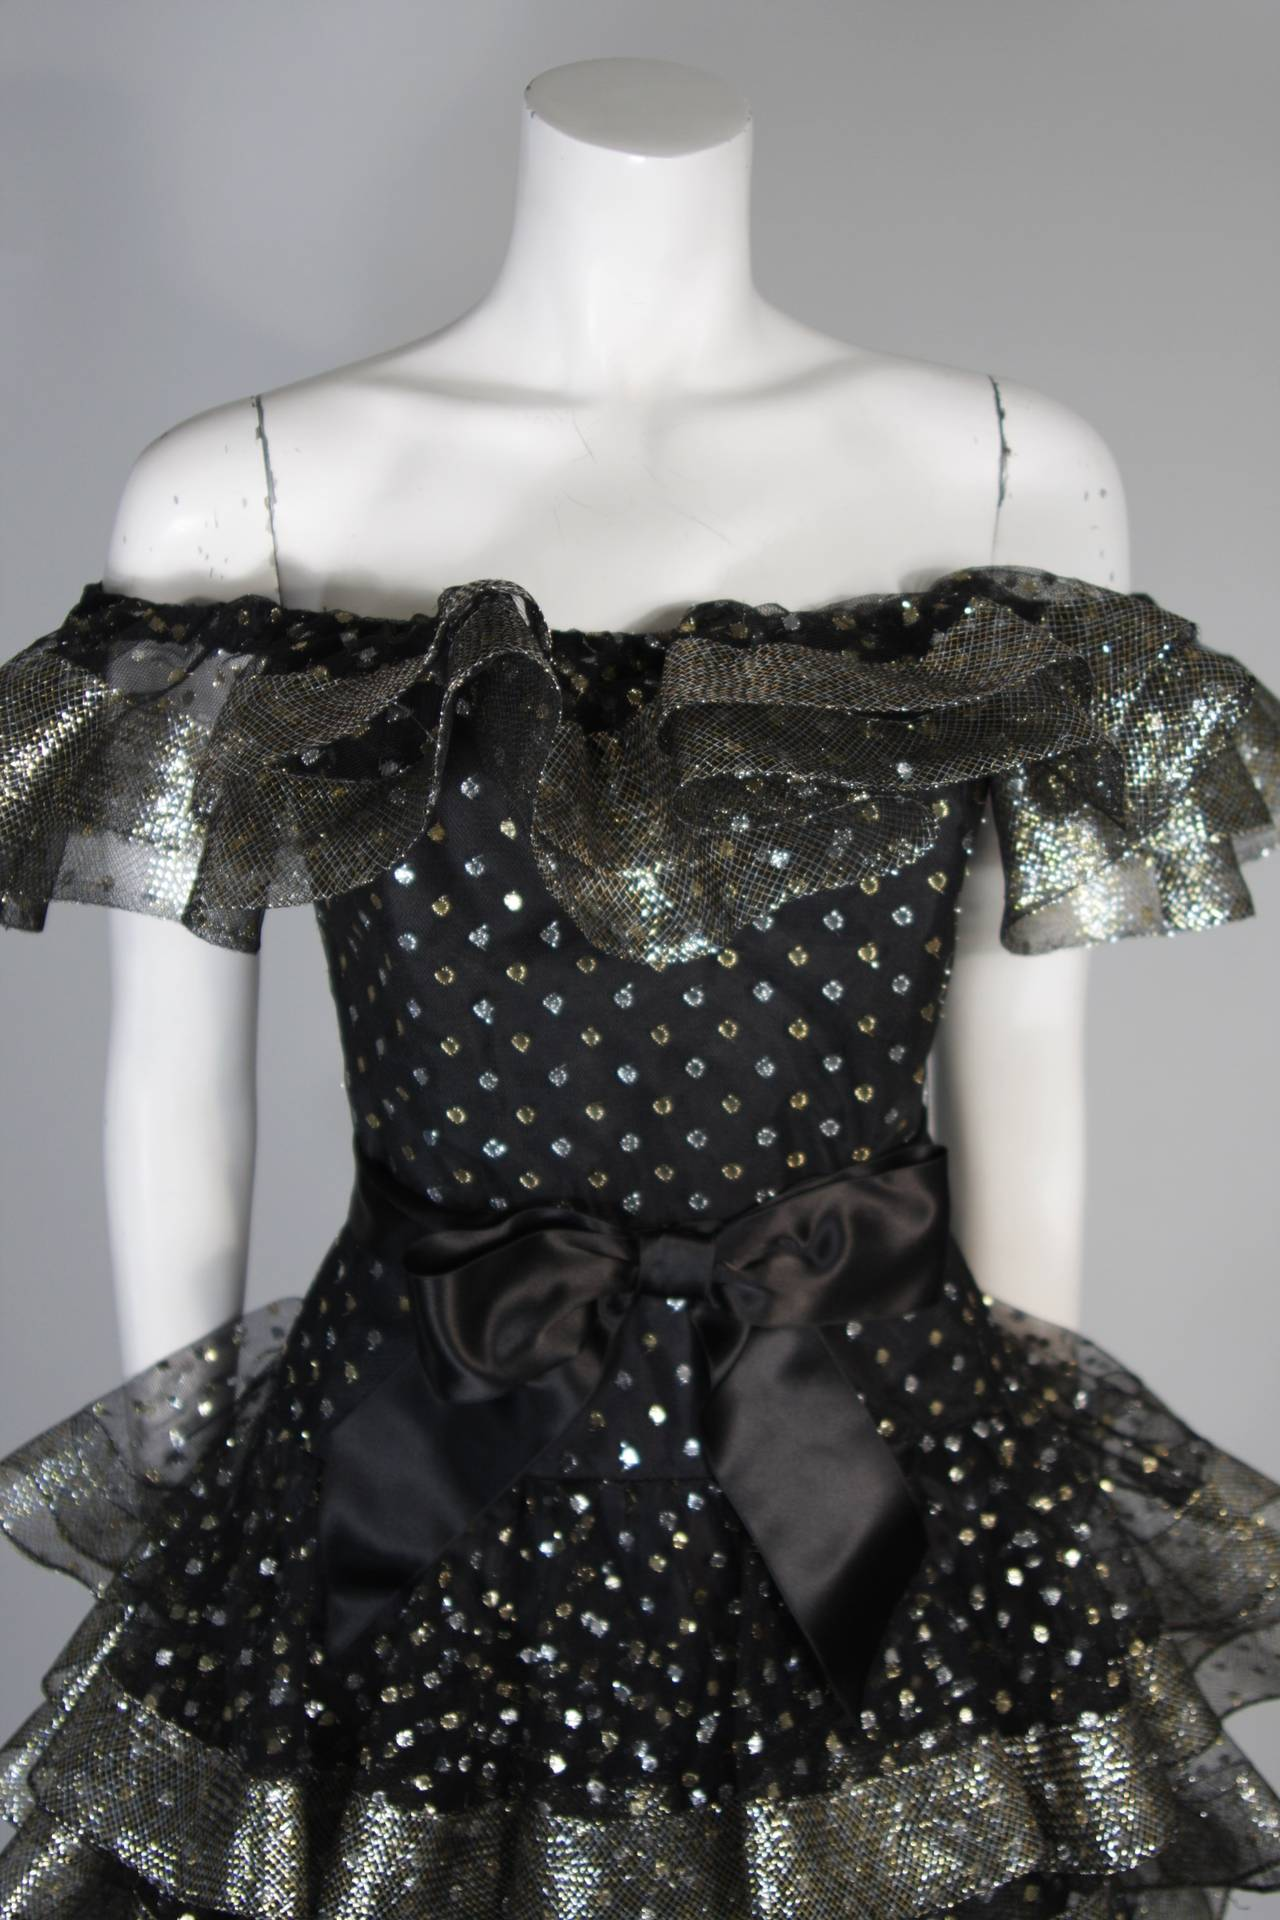 Men's Victor Costa Black Ruffled Cocktail Dress with Silver and Gold Polka Dots Size 2 For Sale